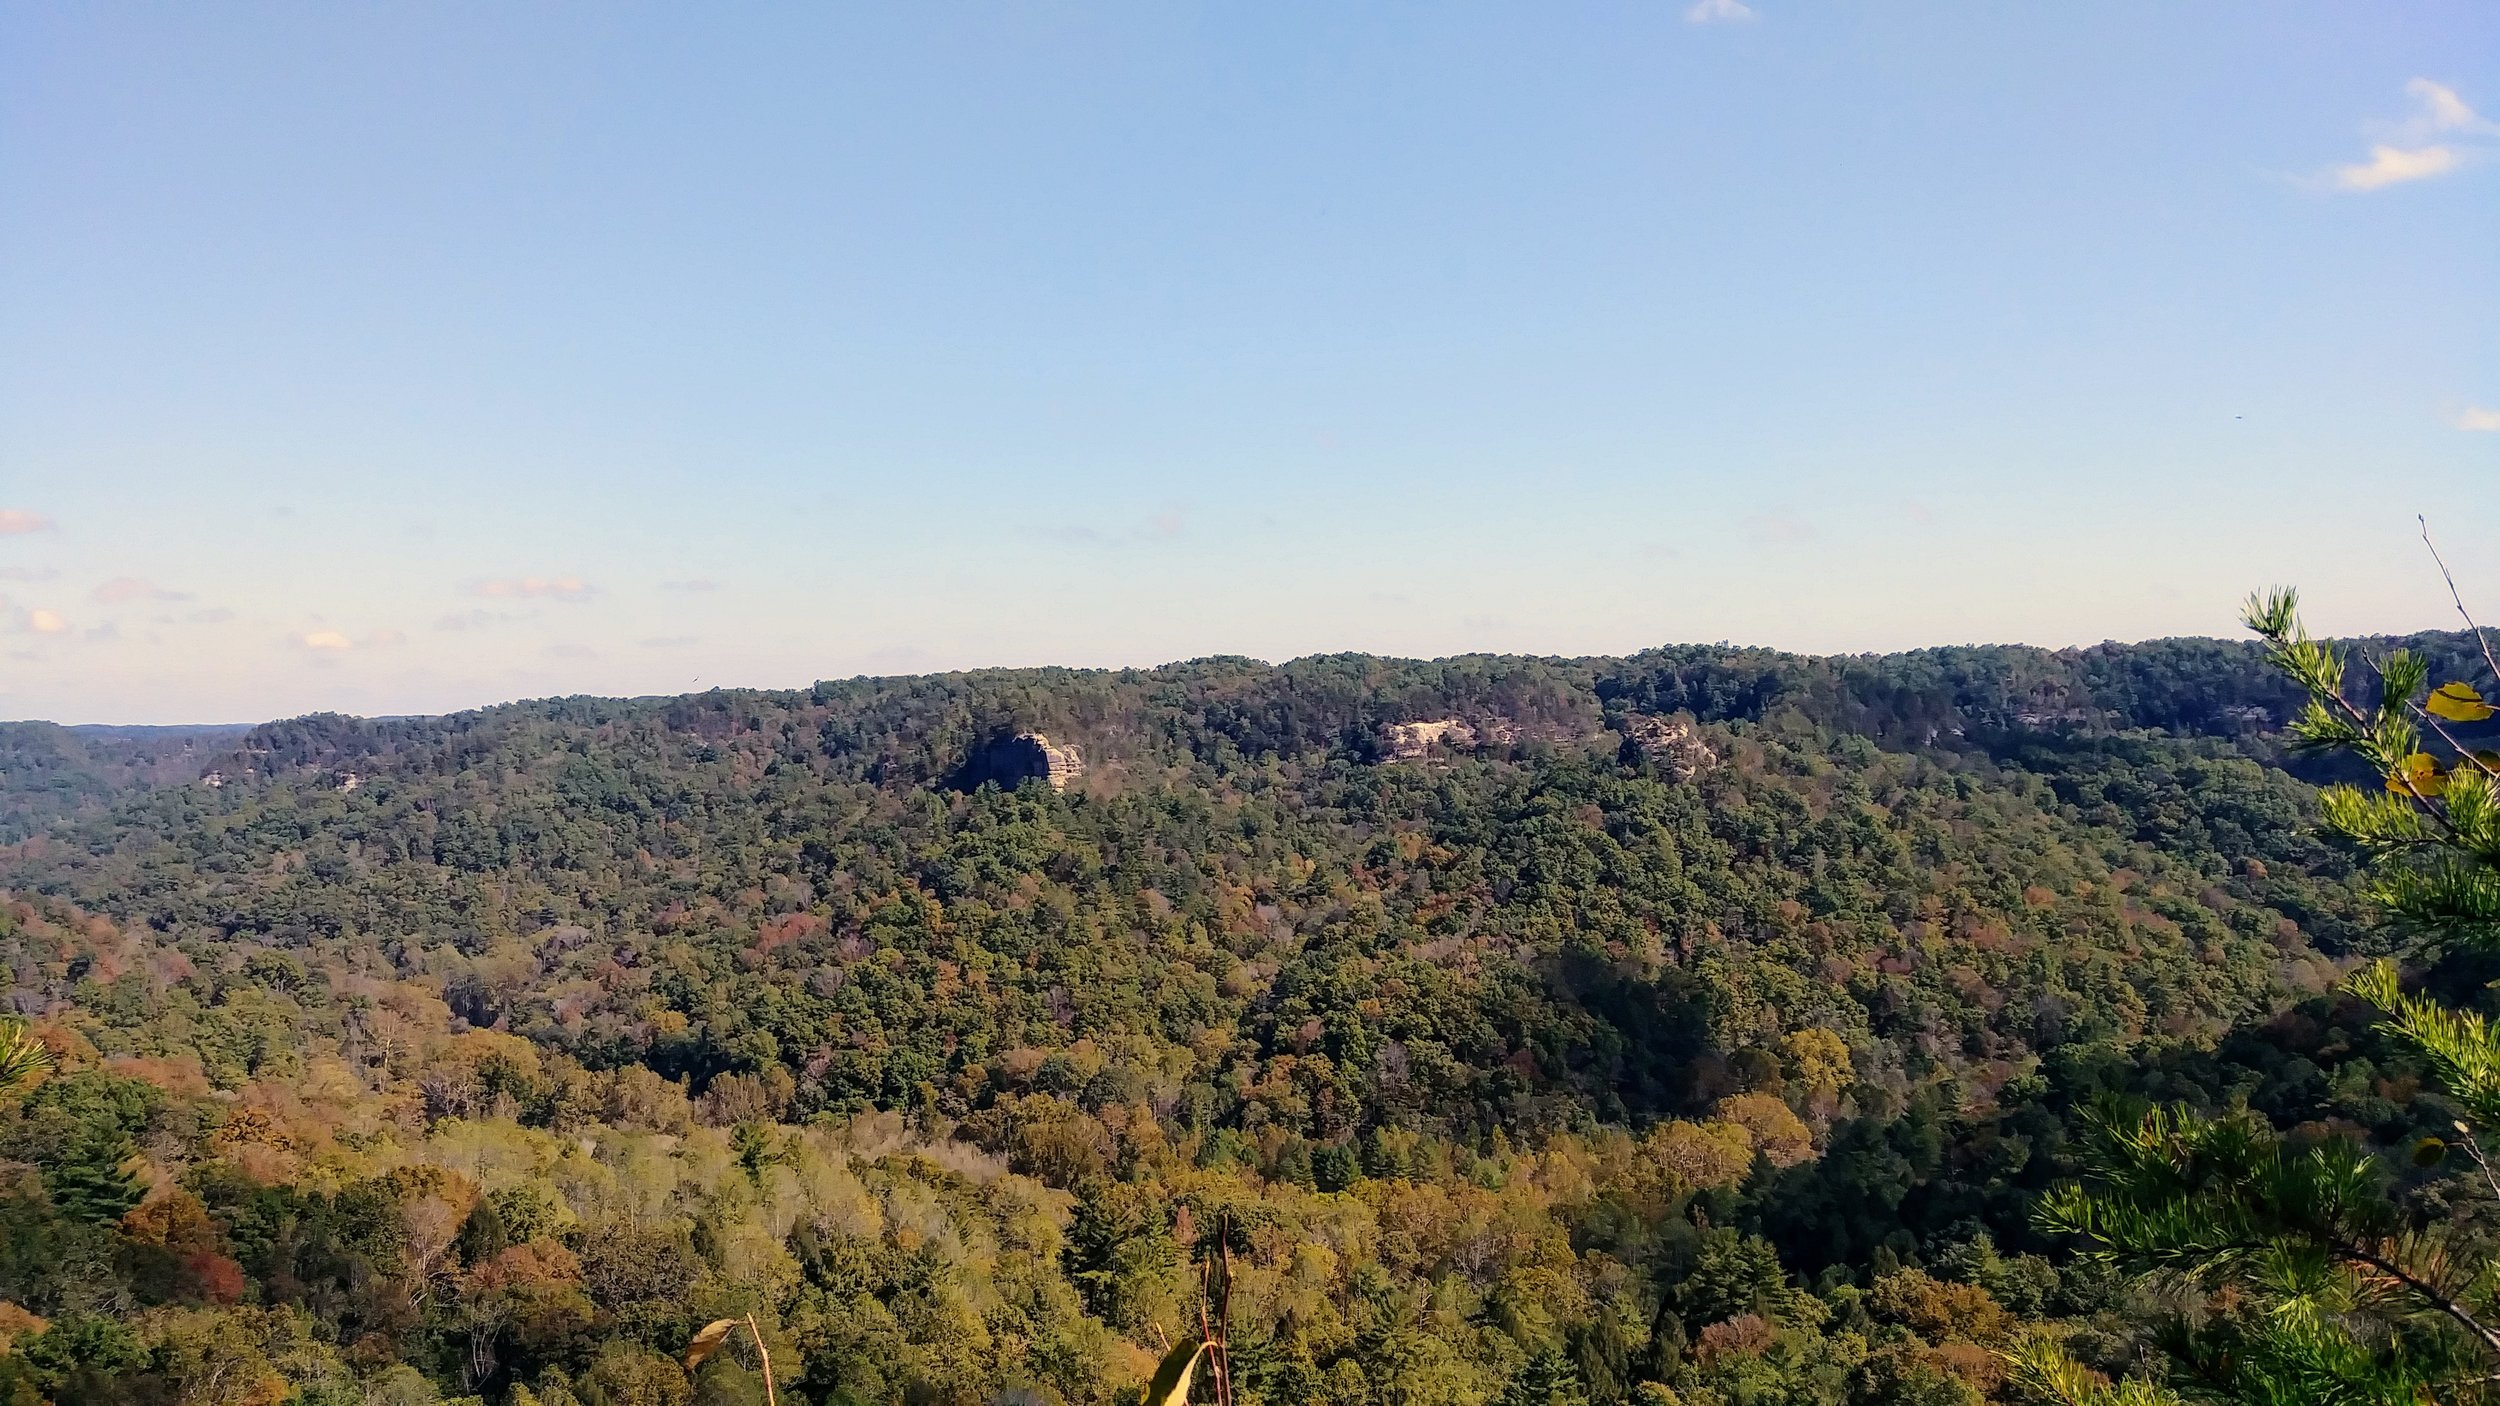 Chimney Rock and Half Moon from a ledge at Pinch 'em Tight